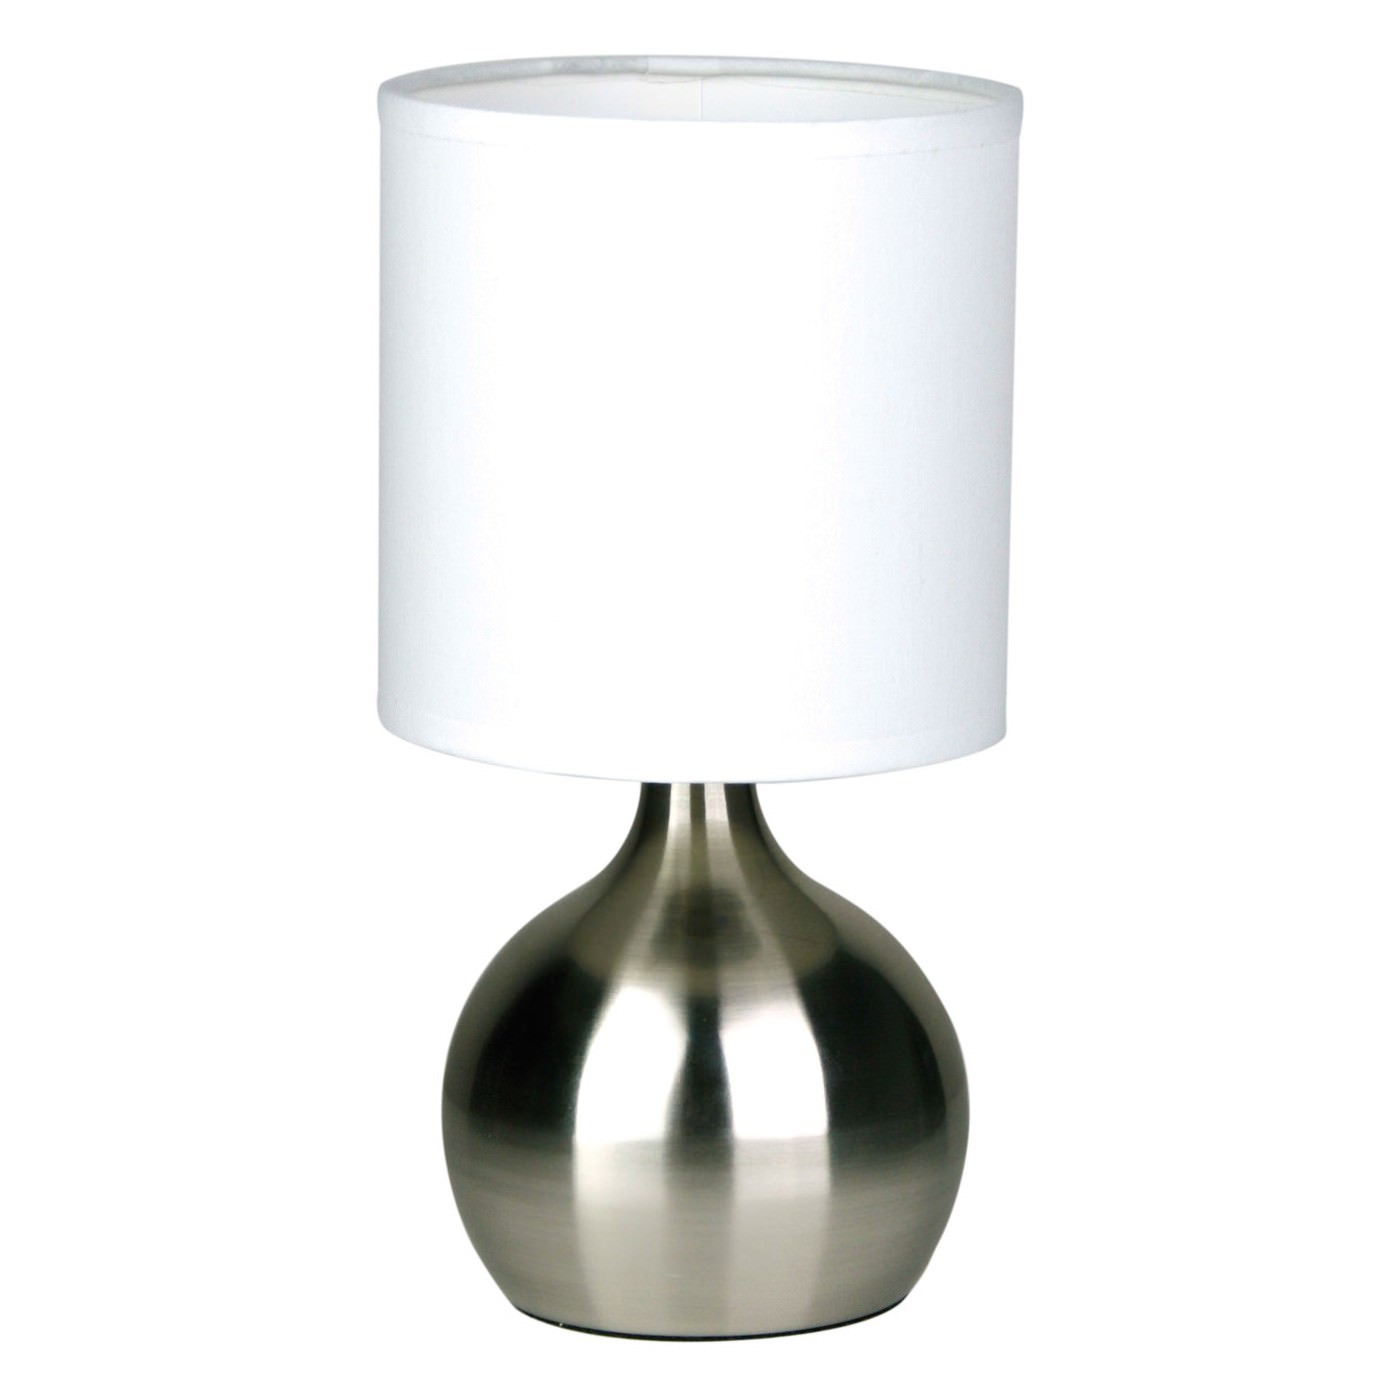 Lotti 3 Stage Touch Table Lamp, Brushed Chrome